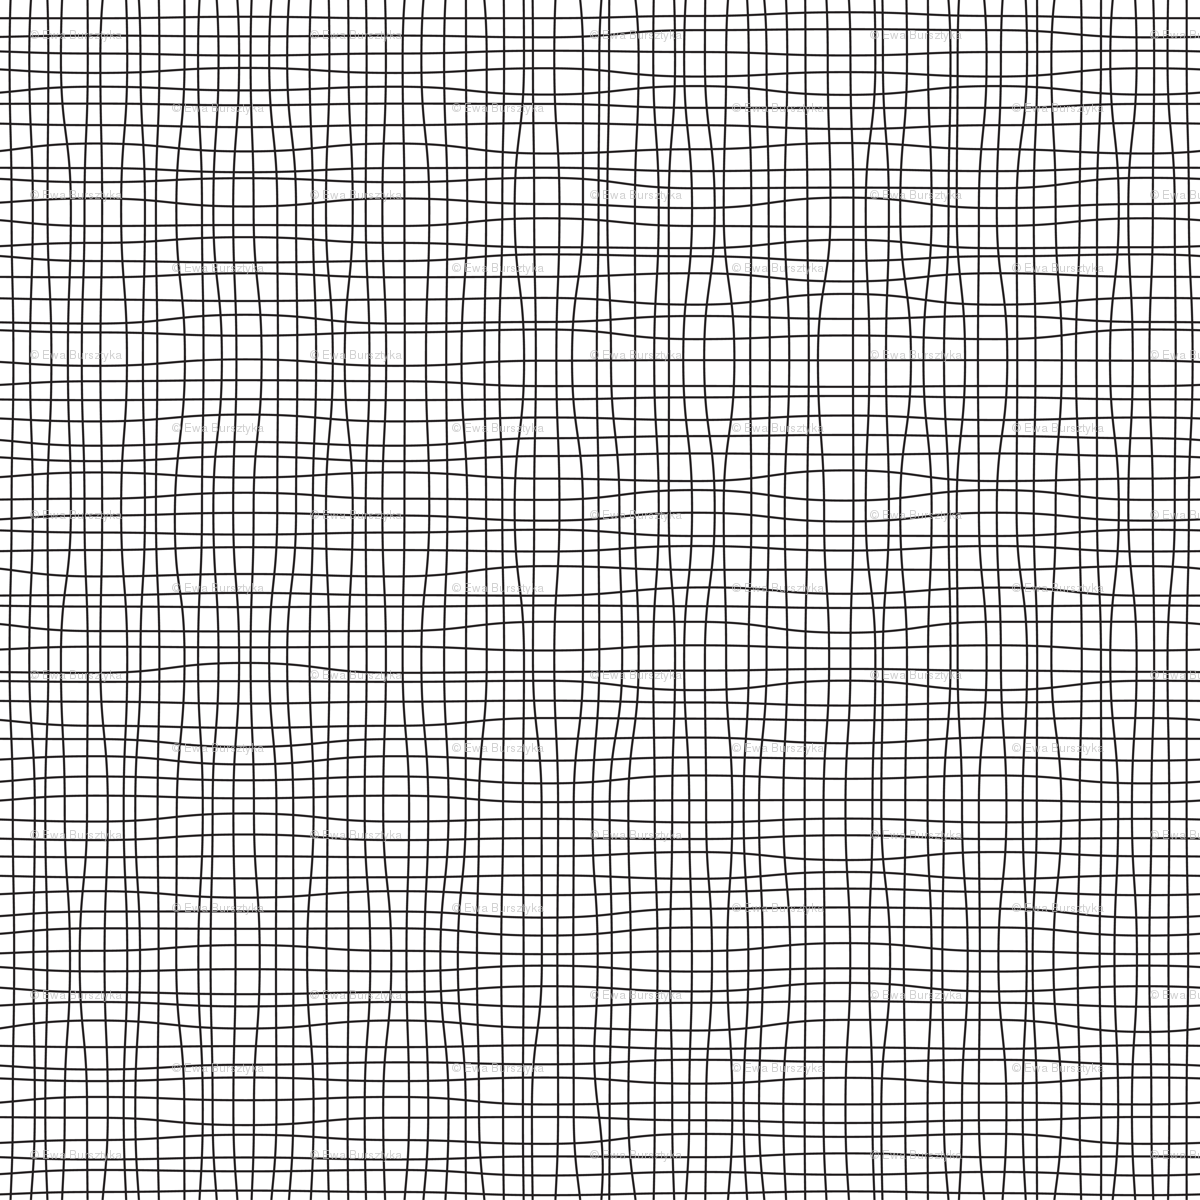 rloose_thread_pattern_highres.png (1200×1200)